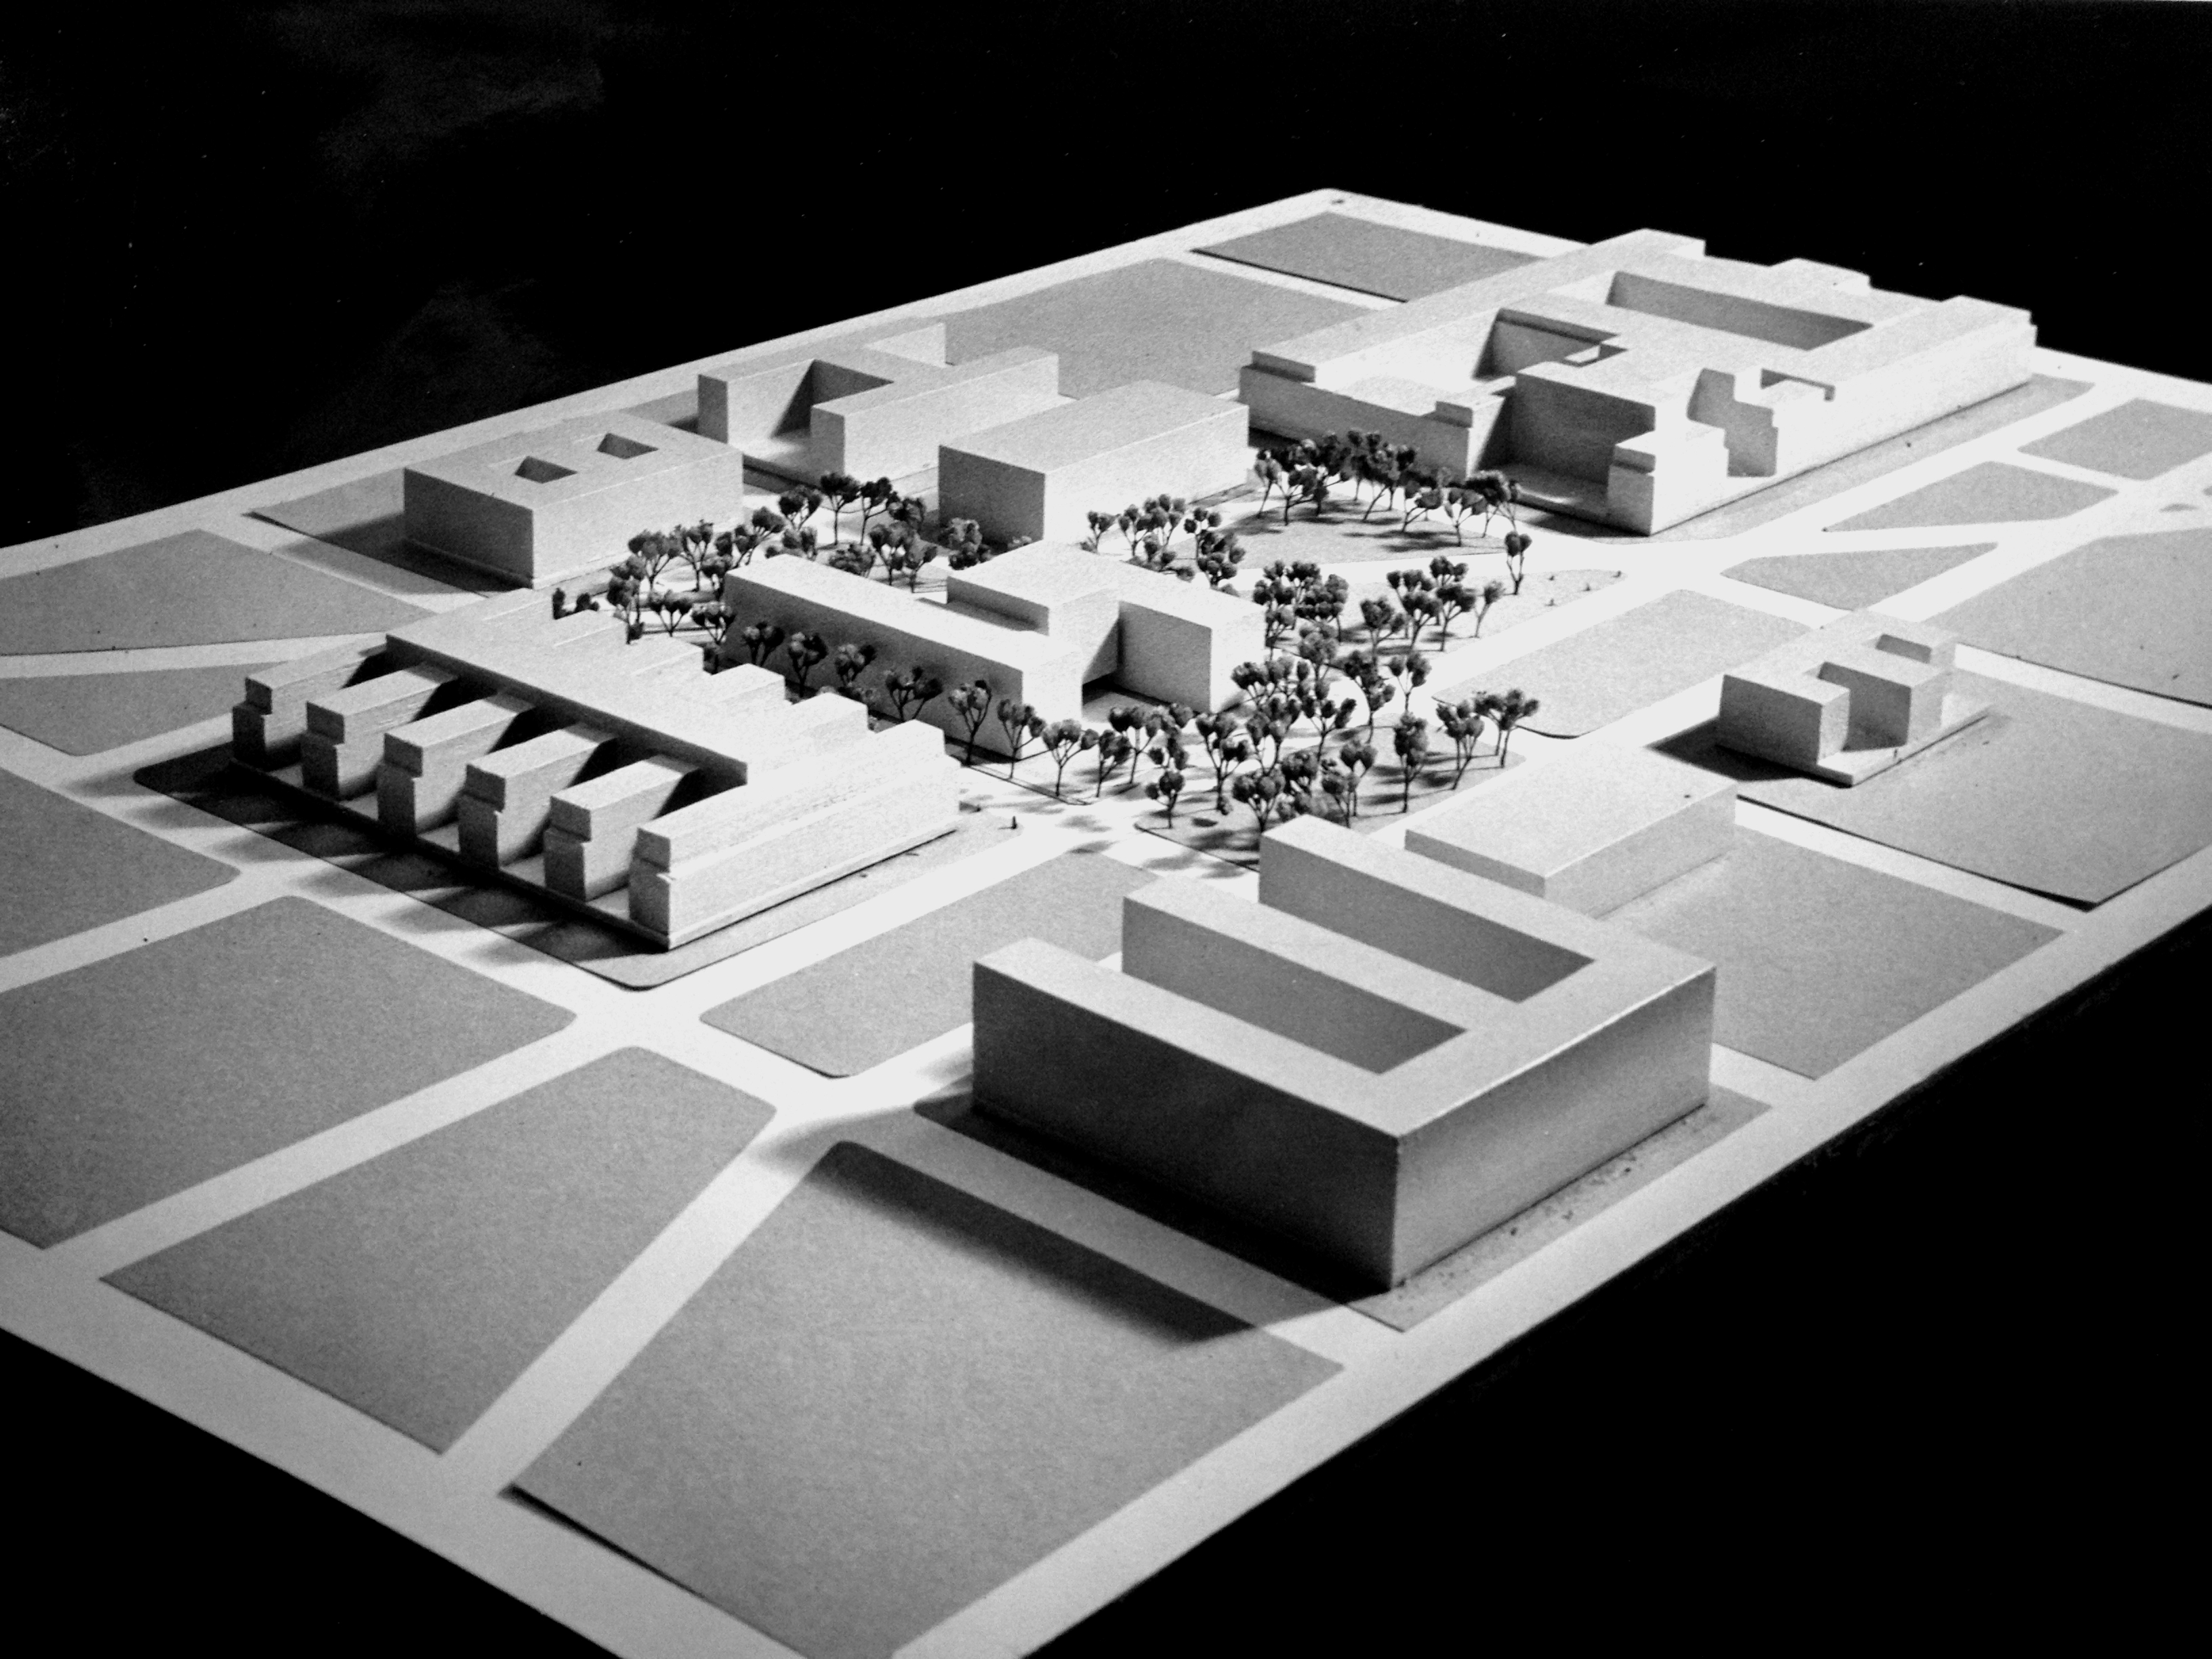 Architectural model of the proposed Federal Office Building 9, including existing federal buildings in the vicinity, c. 1963.